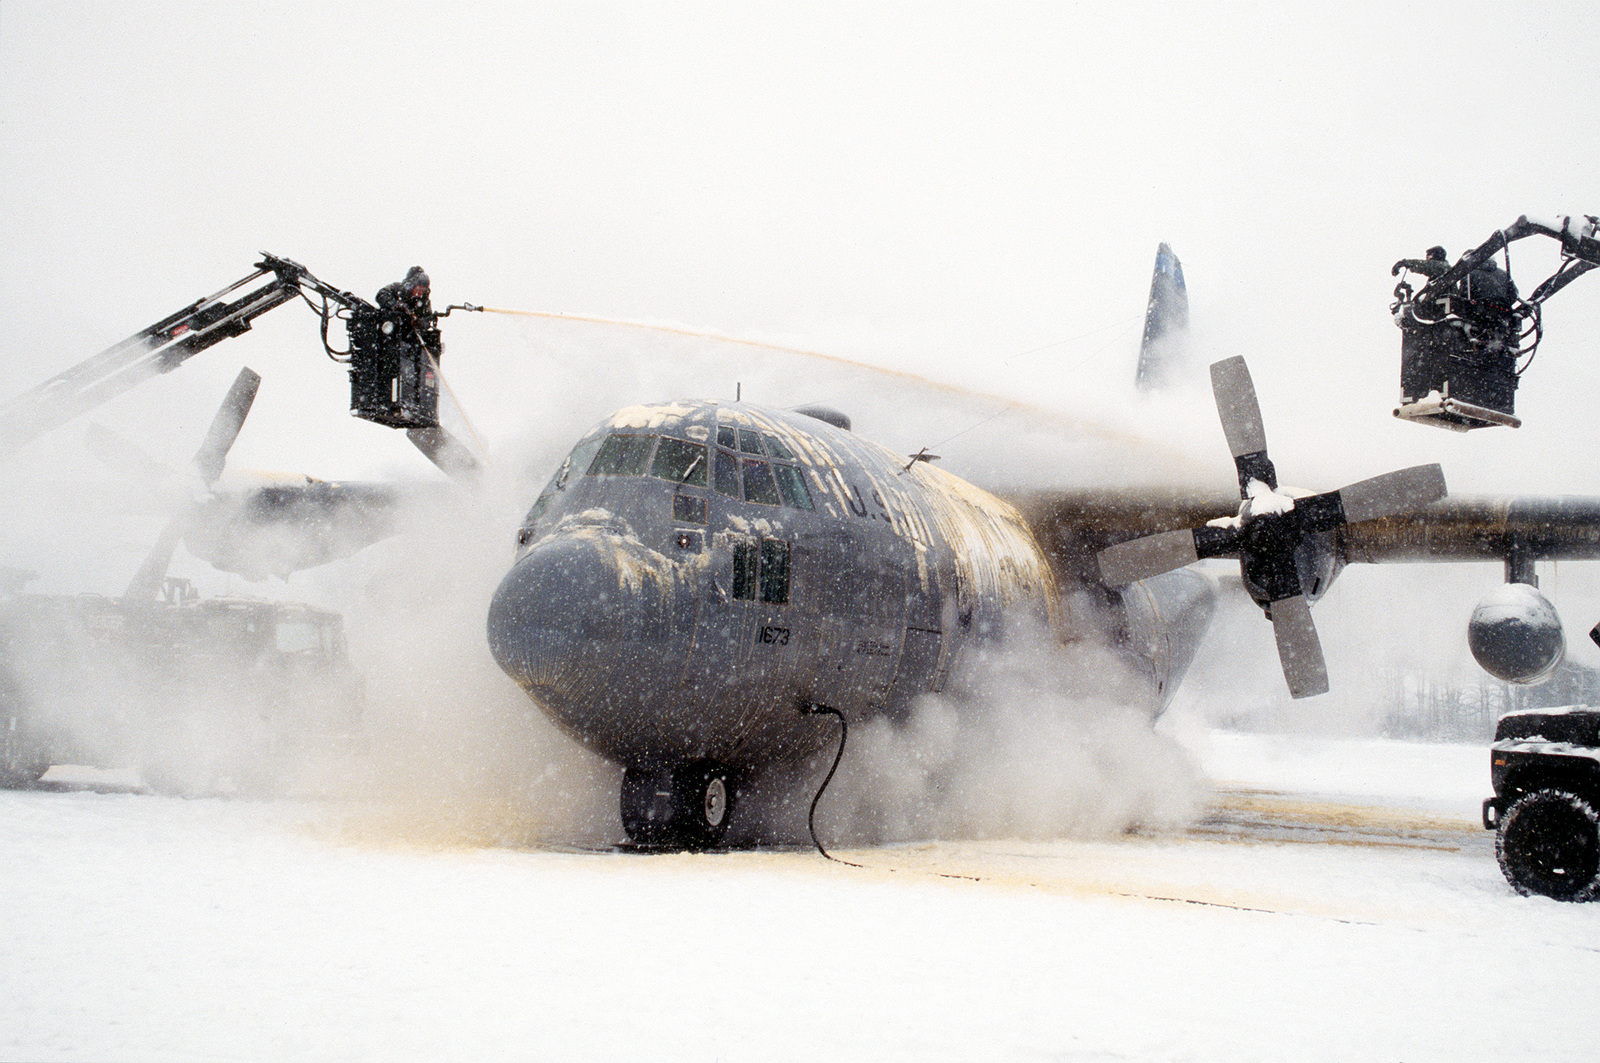 Working under frigid conditions, crew chief and ground support personnel de-ice a 40th Airlift Squadron (AS) C-130H on the snow covered ramp at this United States Air Force Europe (USAFE) base. The 40th AS is assigned to the 7th Wing, Dyess Air Force Base, Texas and is deployed to Ramstein to support Operations Joint Endeavor and Joint Guard from 4 Dec. 1996 to 23 Jan. 1997. Exact Date Shot Unknown